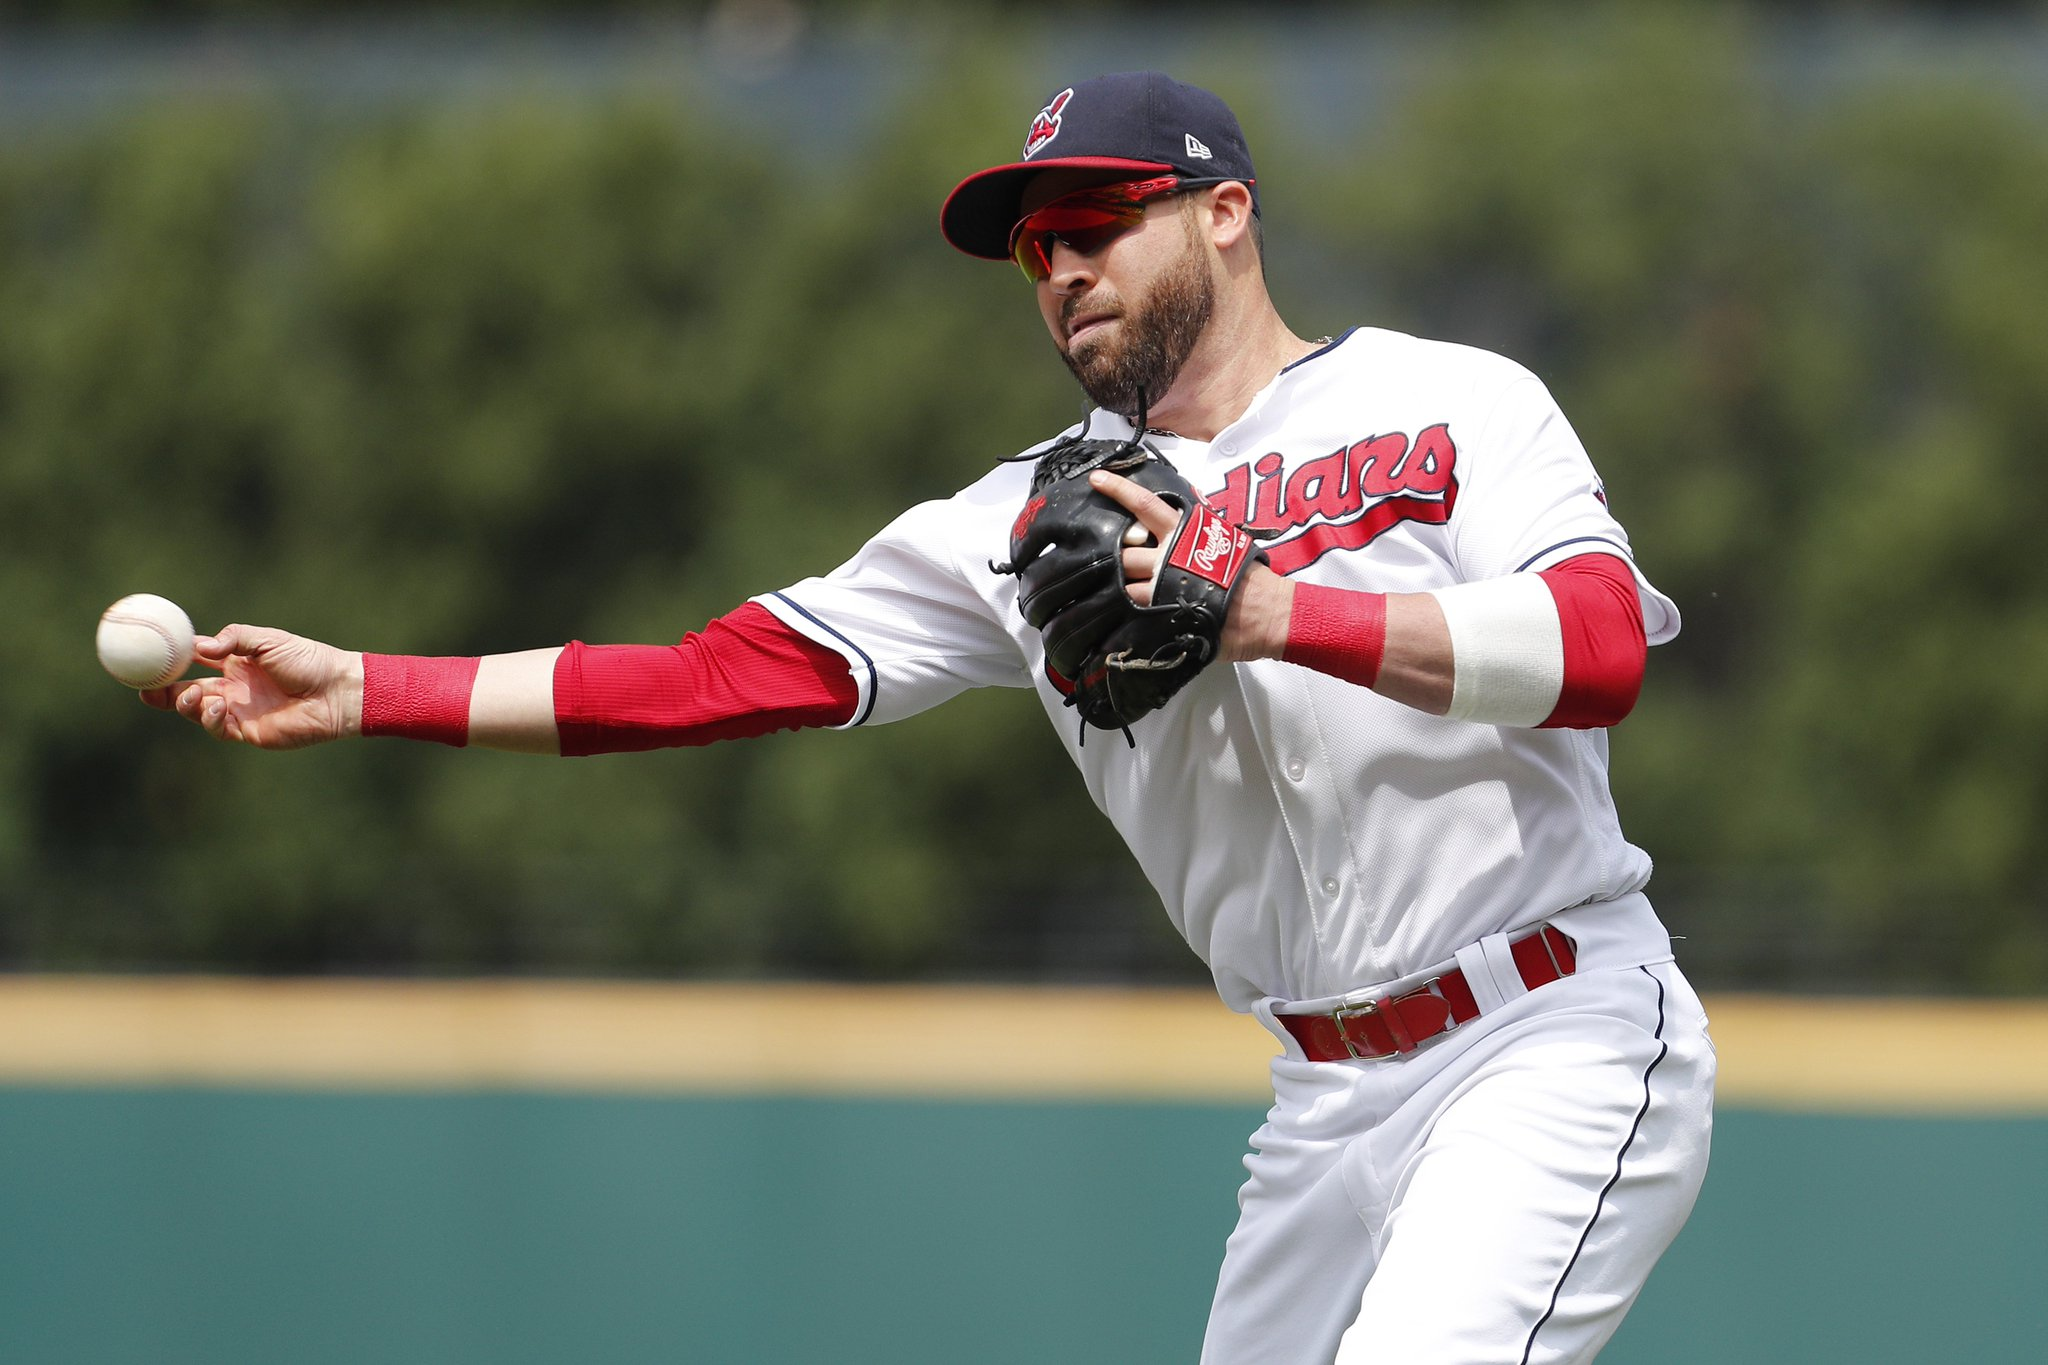 """Mets, Indians have had """"serious talks"""" about a Jason Kipnis deal, per @ChrisCotillo https://t.co/HsNPvYhYmA https://t.co/3N1272AKu9"""